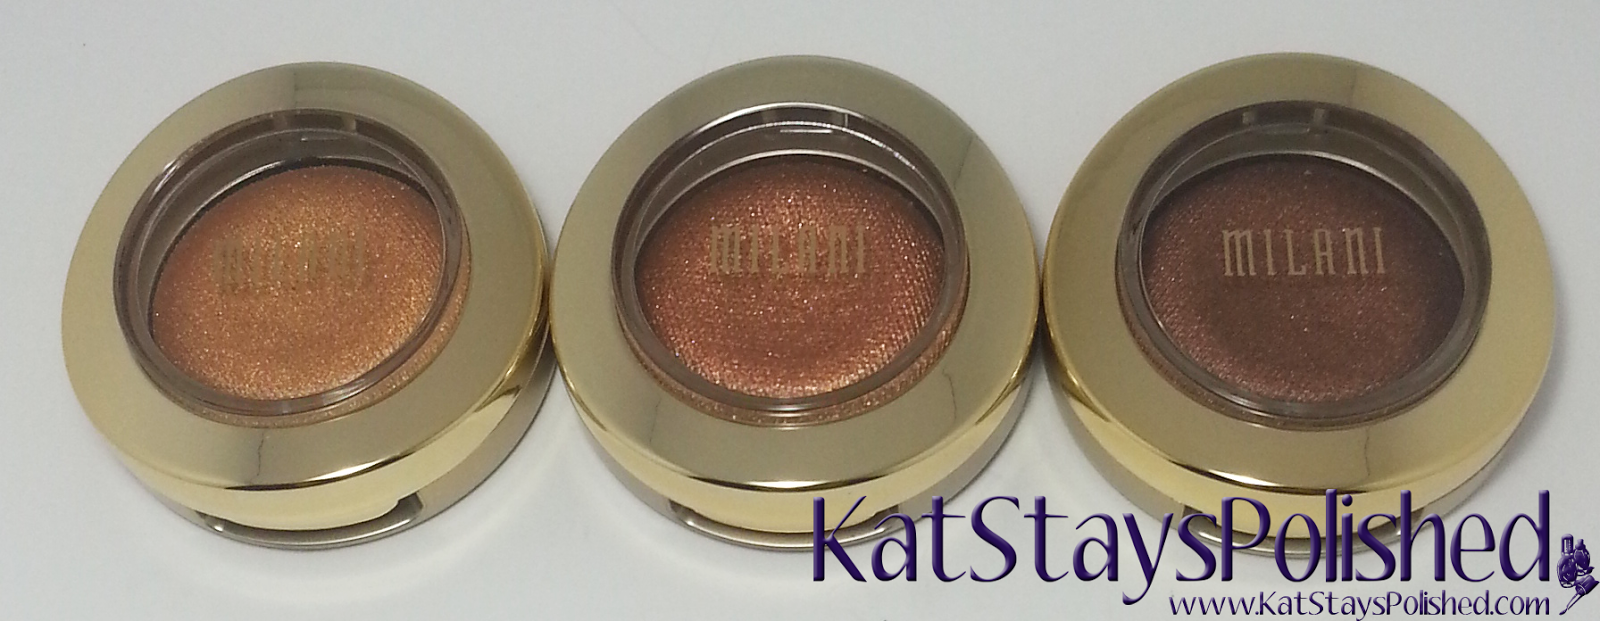 Milani Bella Eyes Gel Powder Eye Shadow - Gold - Copper - Bronze | Kat Stays Polished